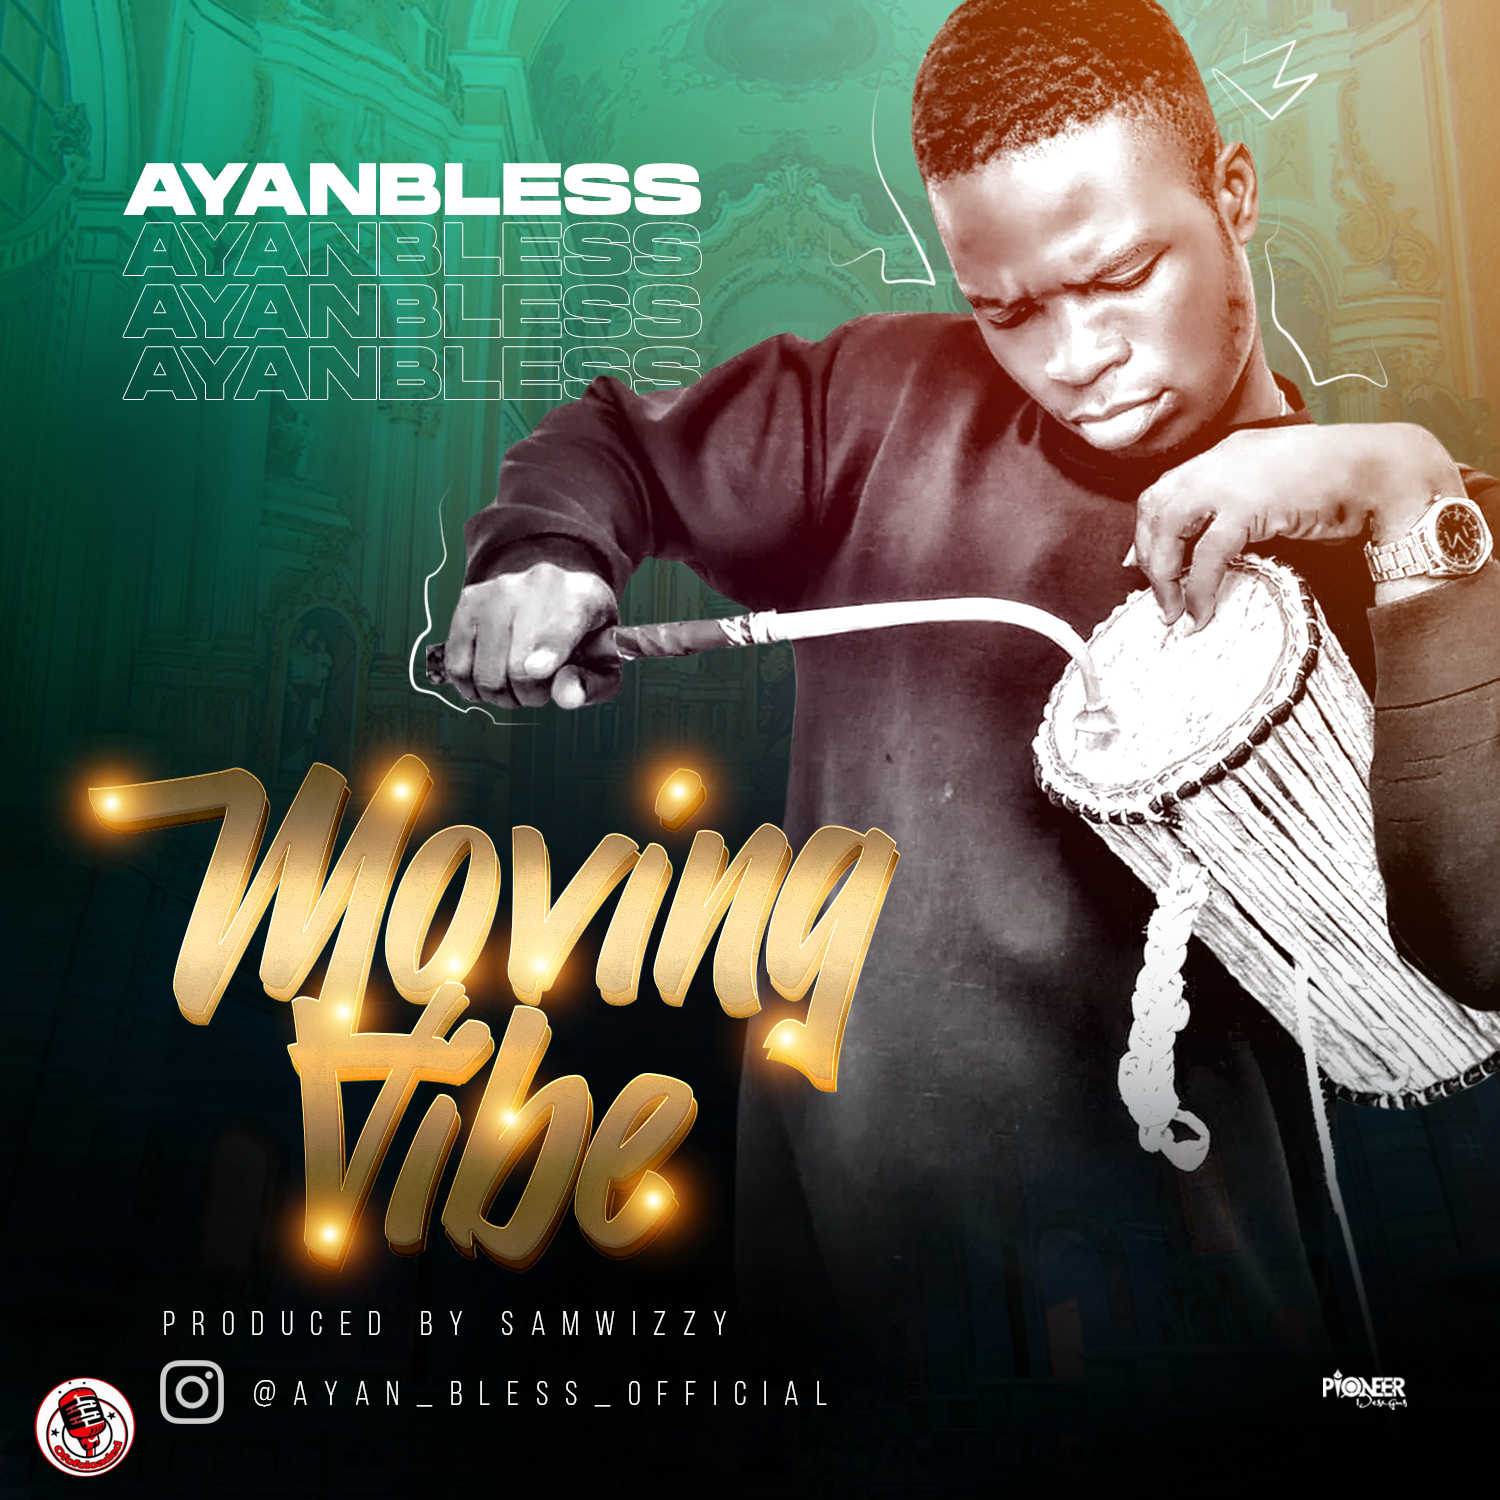 Ayan Bless – Moving Vibe min